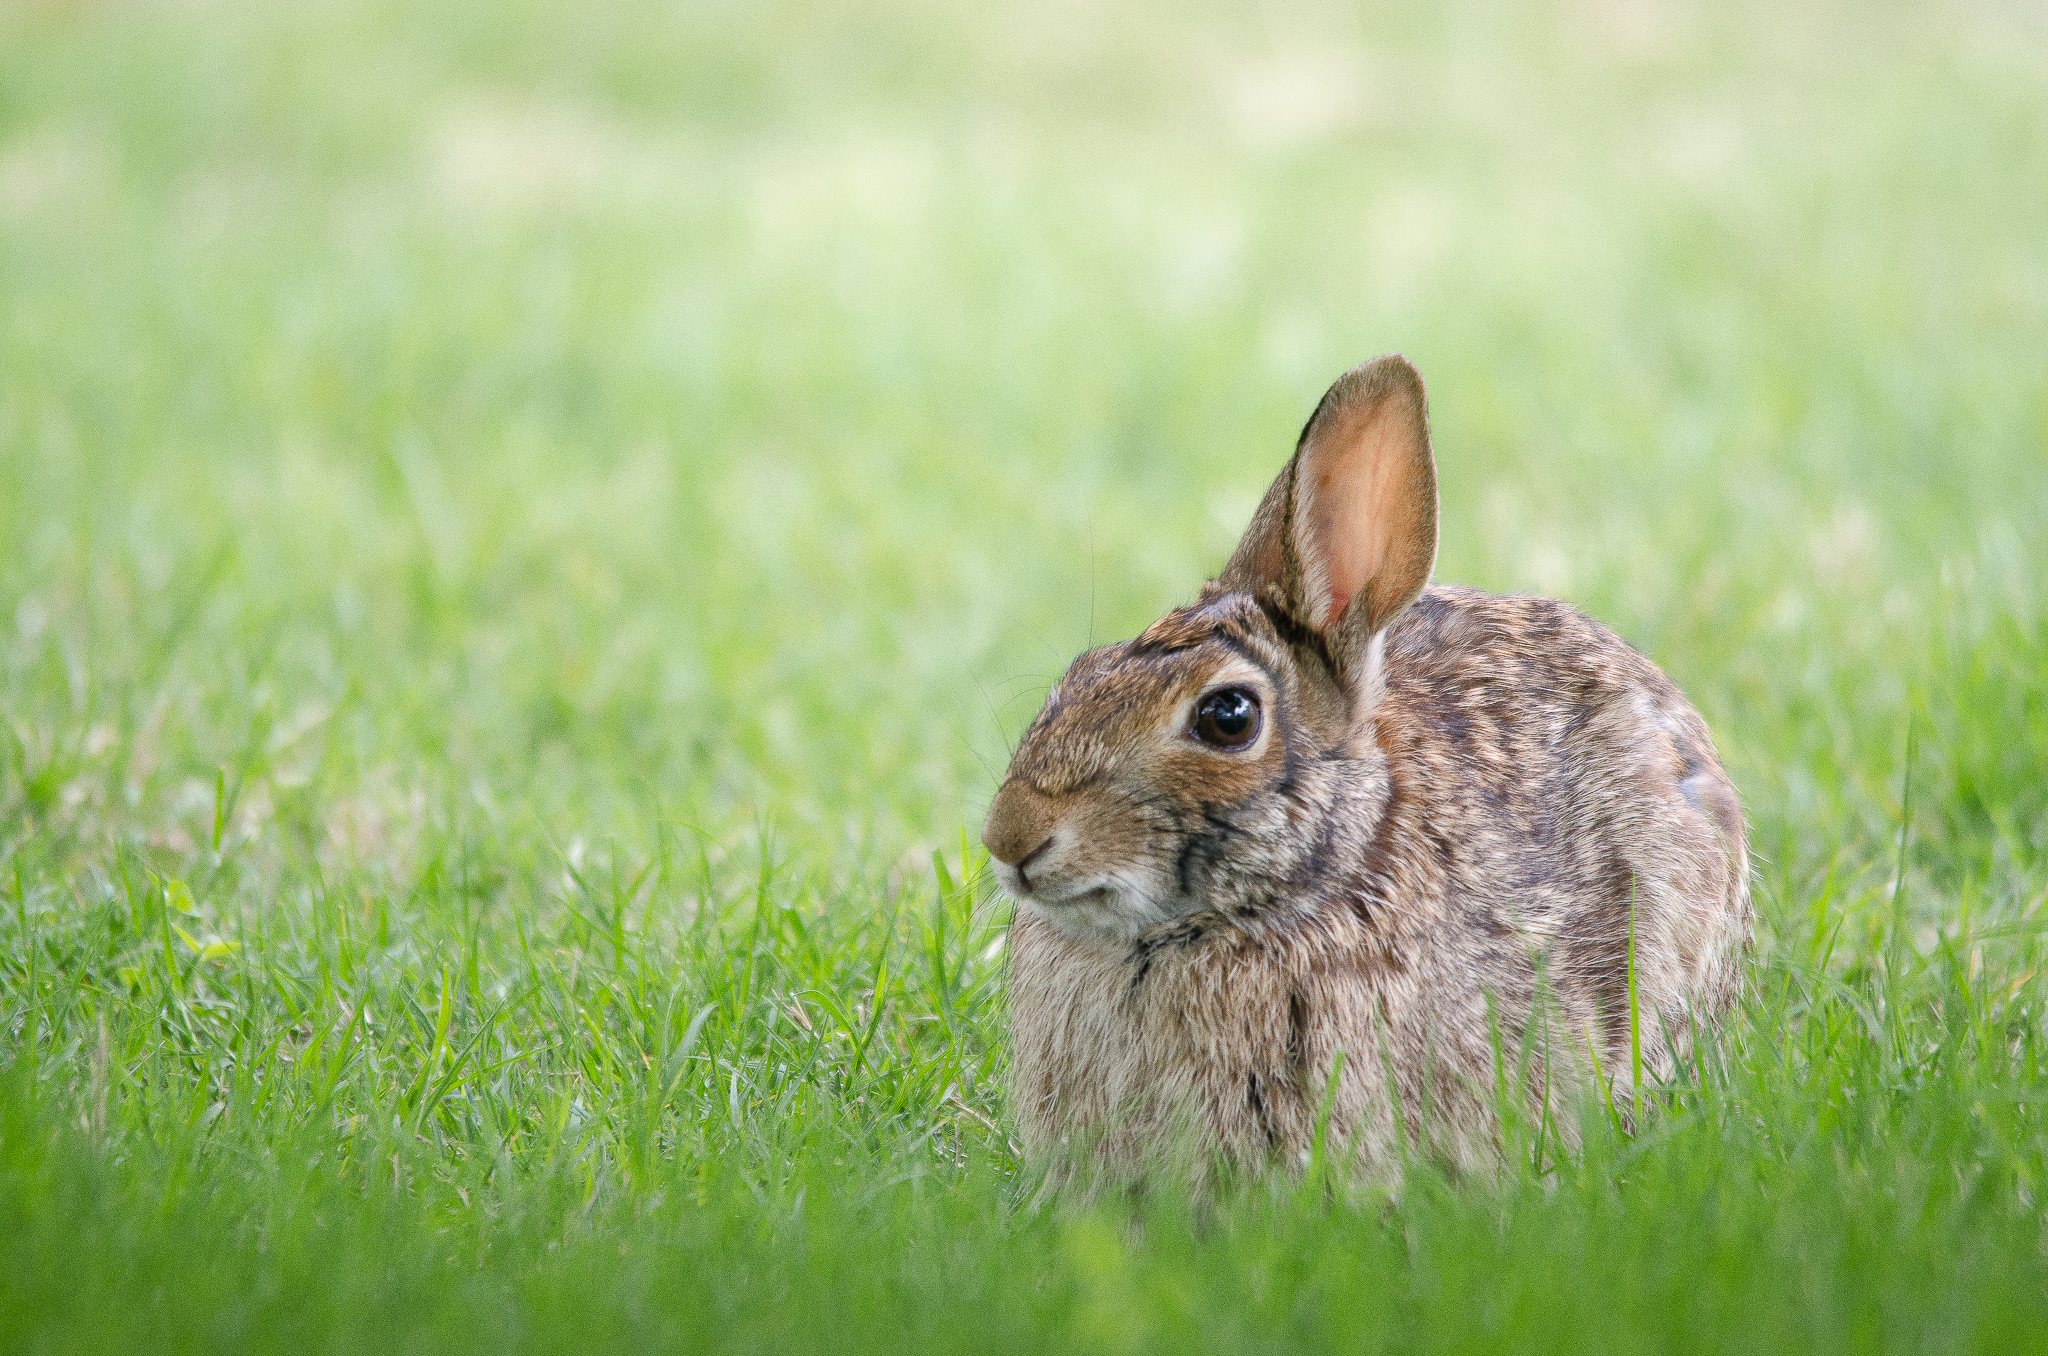 68586 download wallpaper Animals, Grass, Hide, Hare, Ruzak screensavers and pictures for free